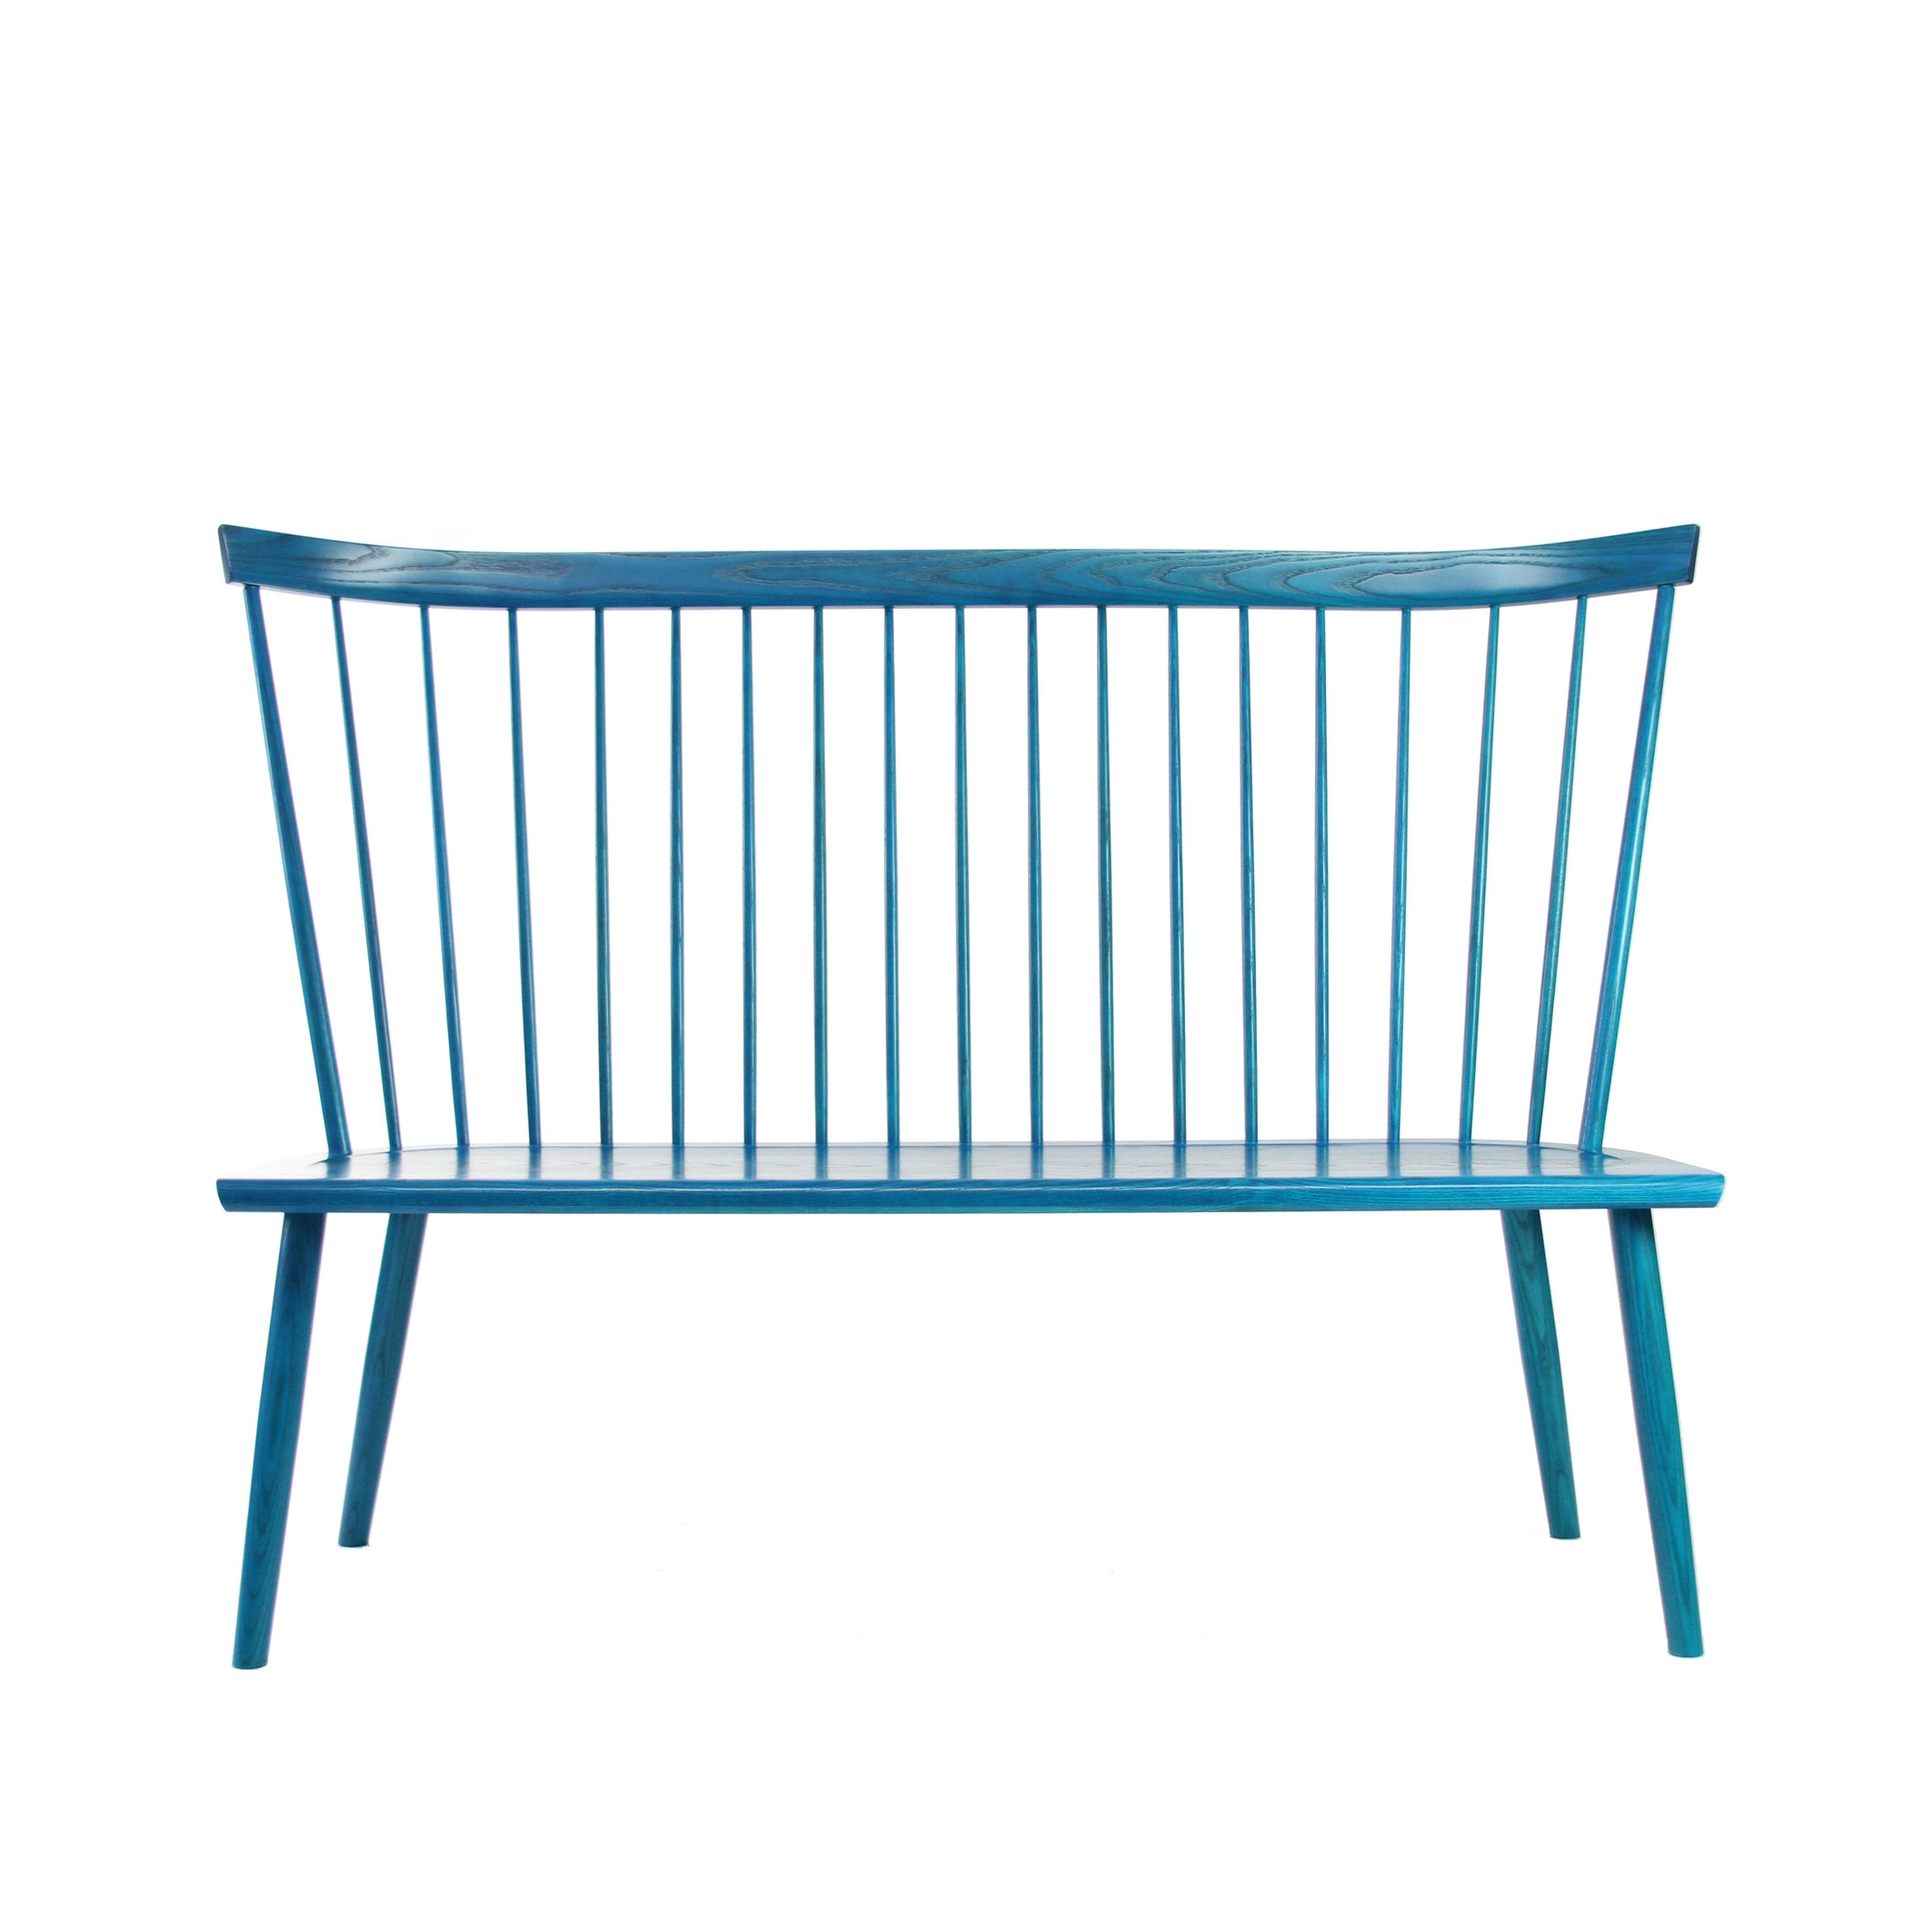 "63"" Cyan Colt High Back Settee Bench Blue Turquoise Stain Ash Stained"